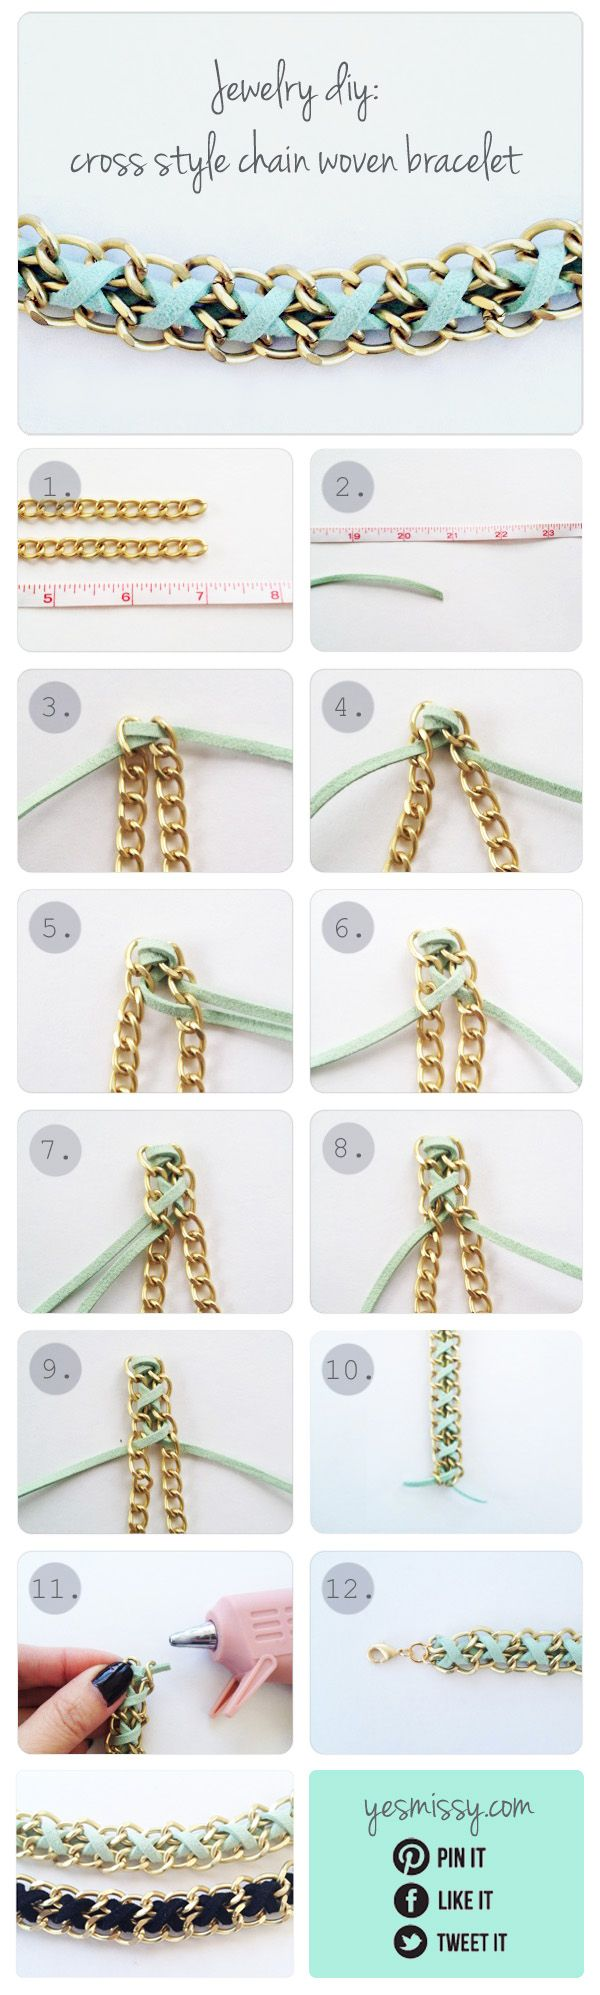 DIY chain bracelet; I so want to make this